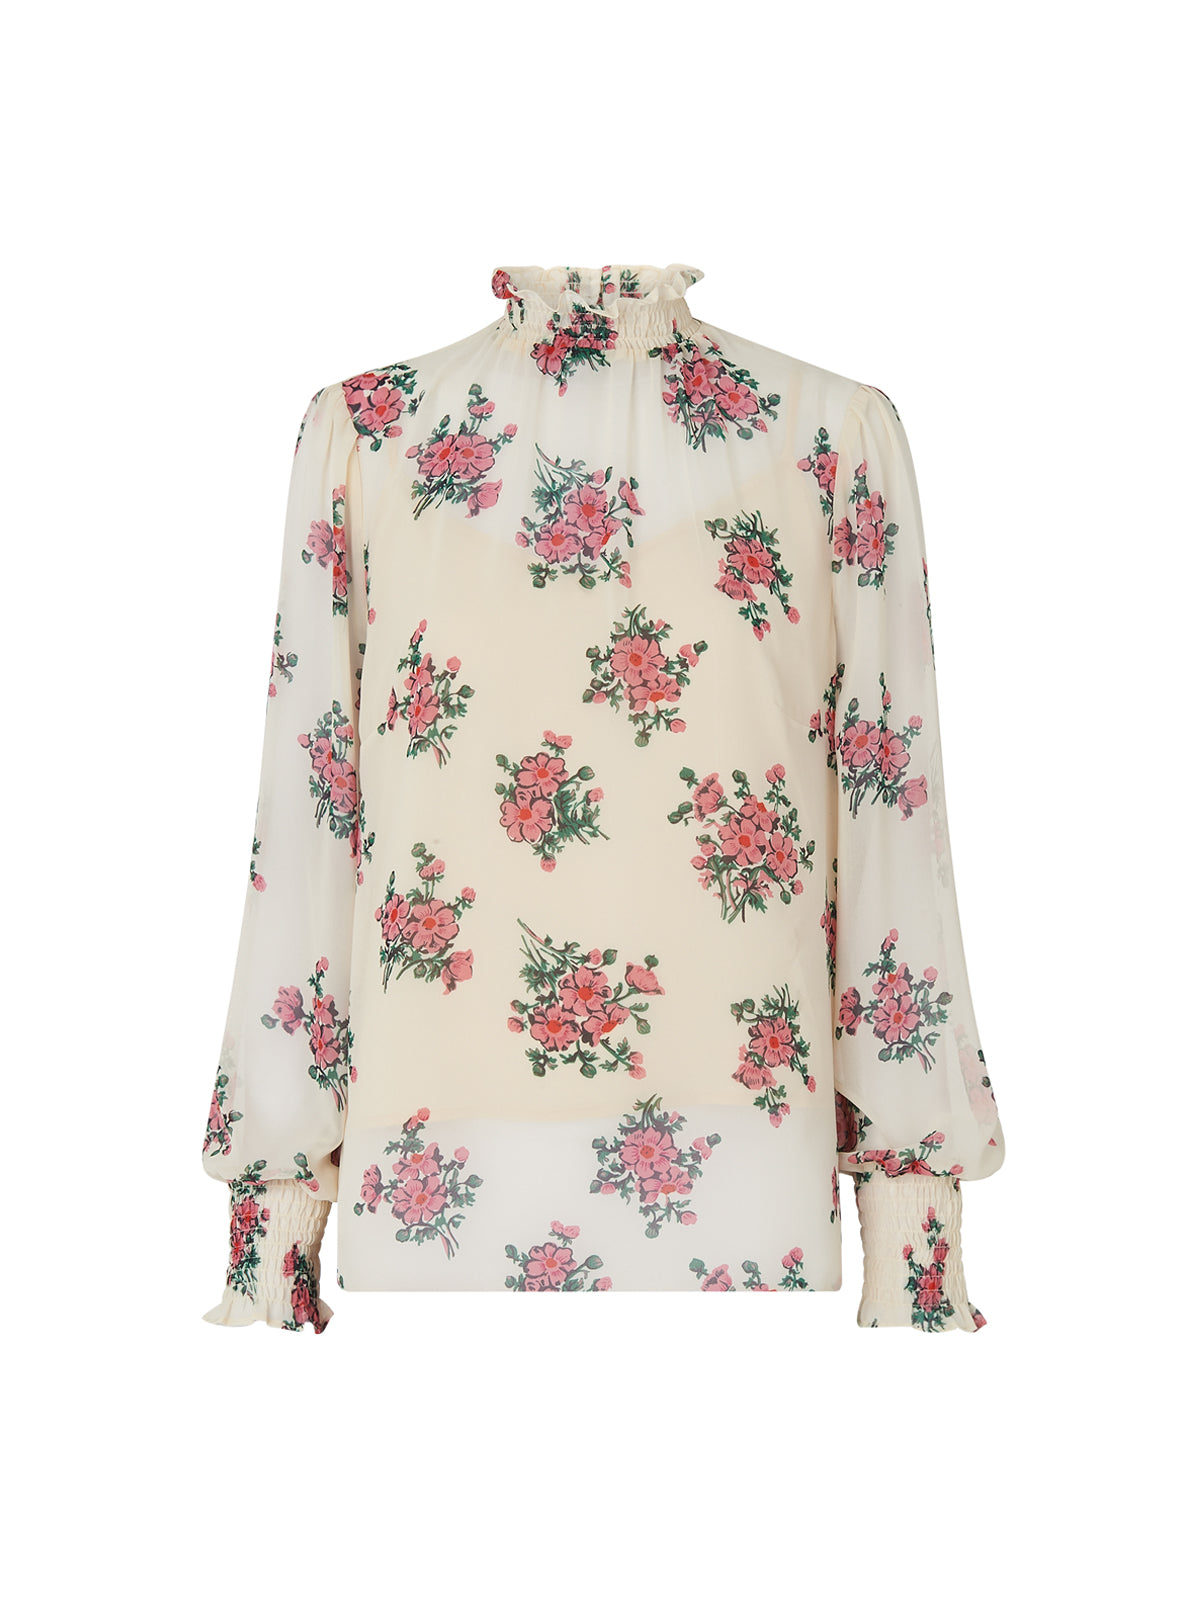 Meredith Cream Smocked Floral Print Blouse by KITRI Studio